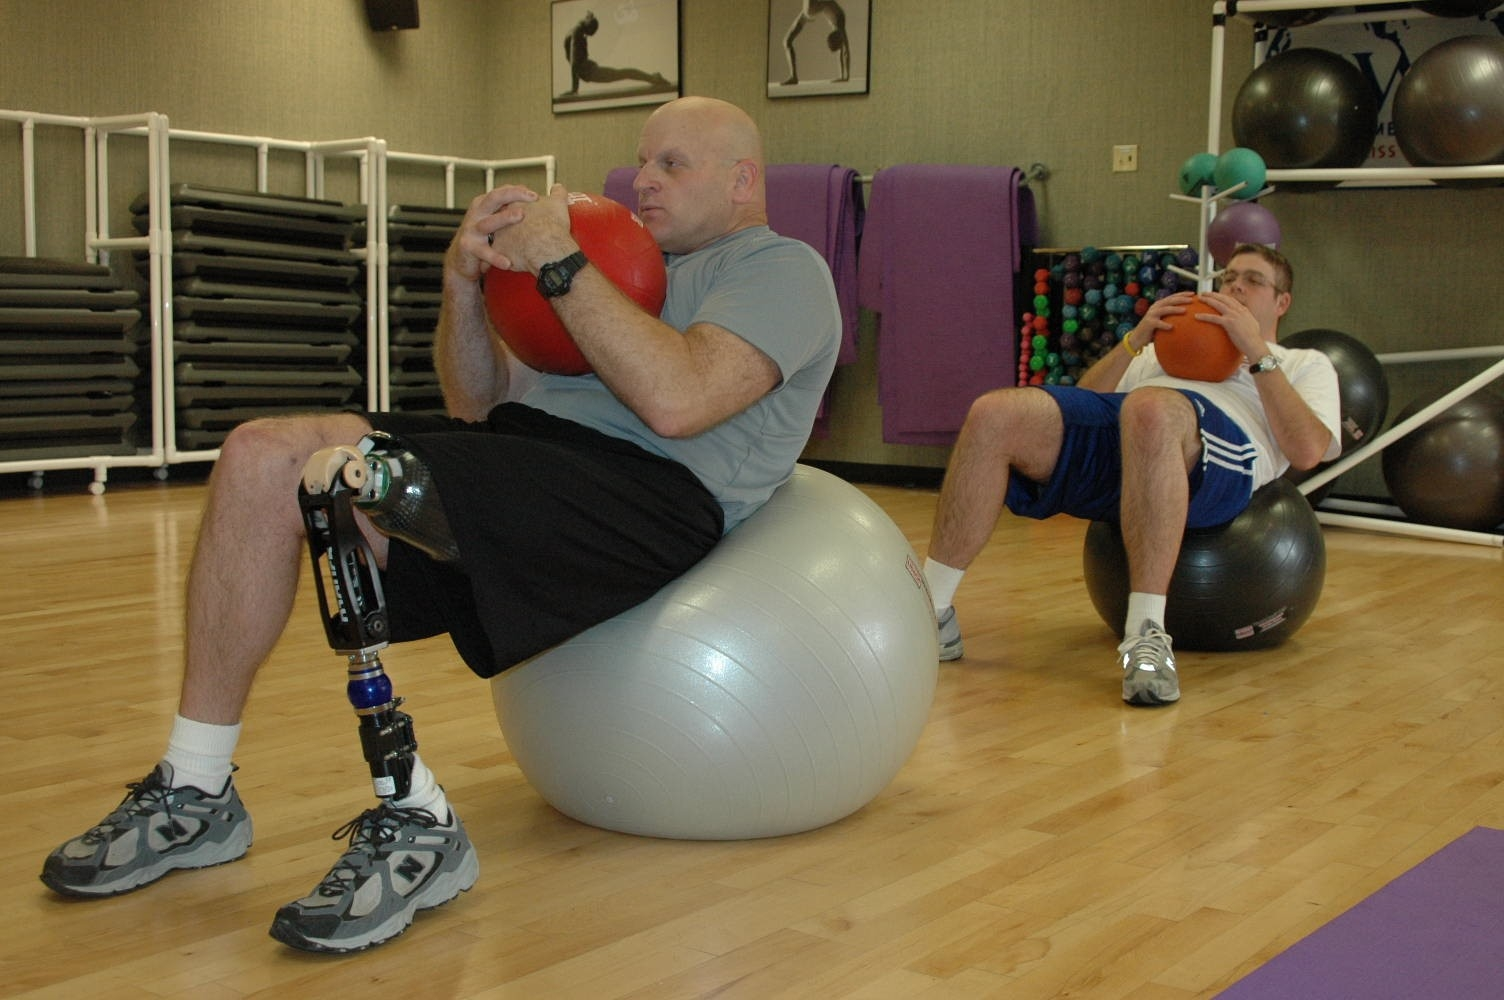 Wounded veteran with a leg prosthetic doing Pilates in a class